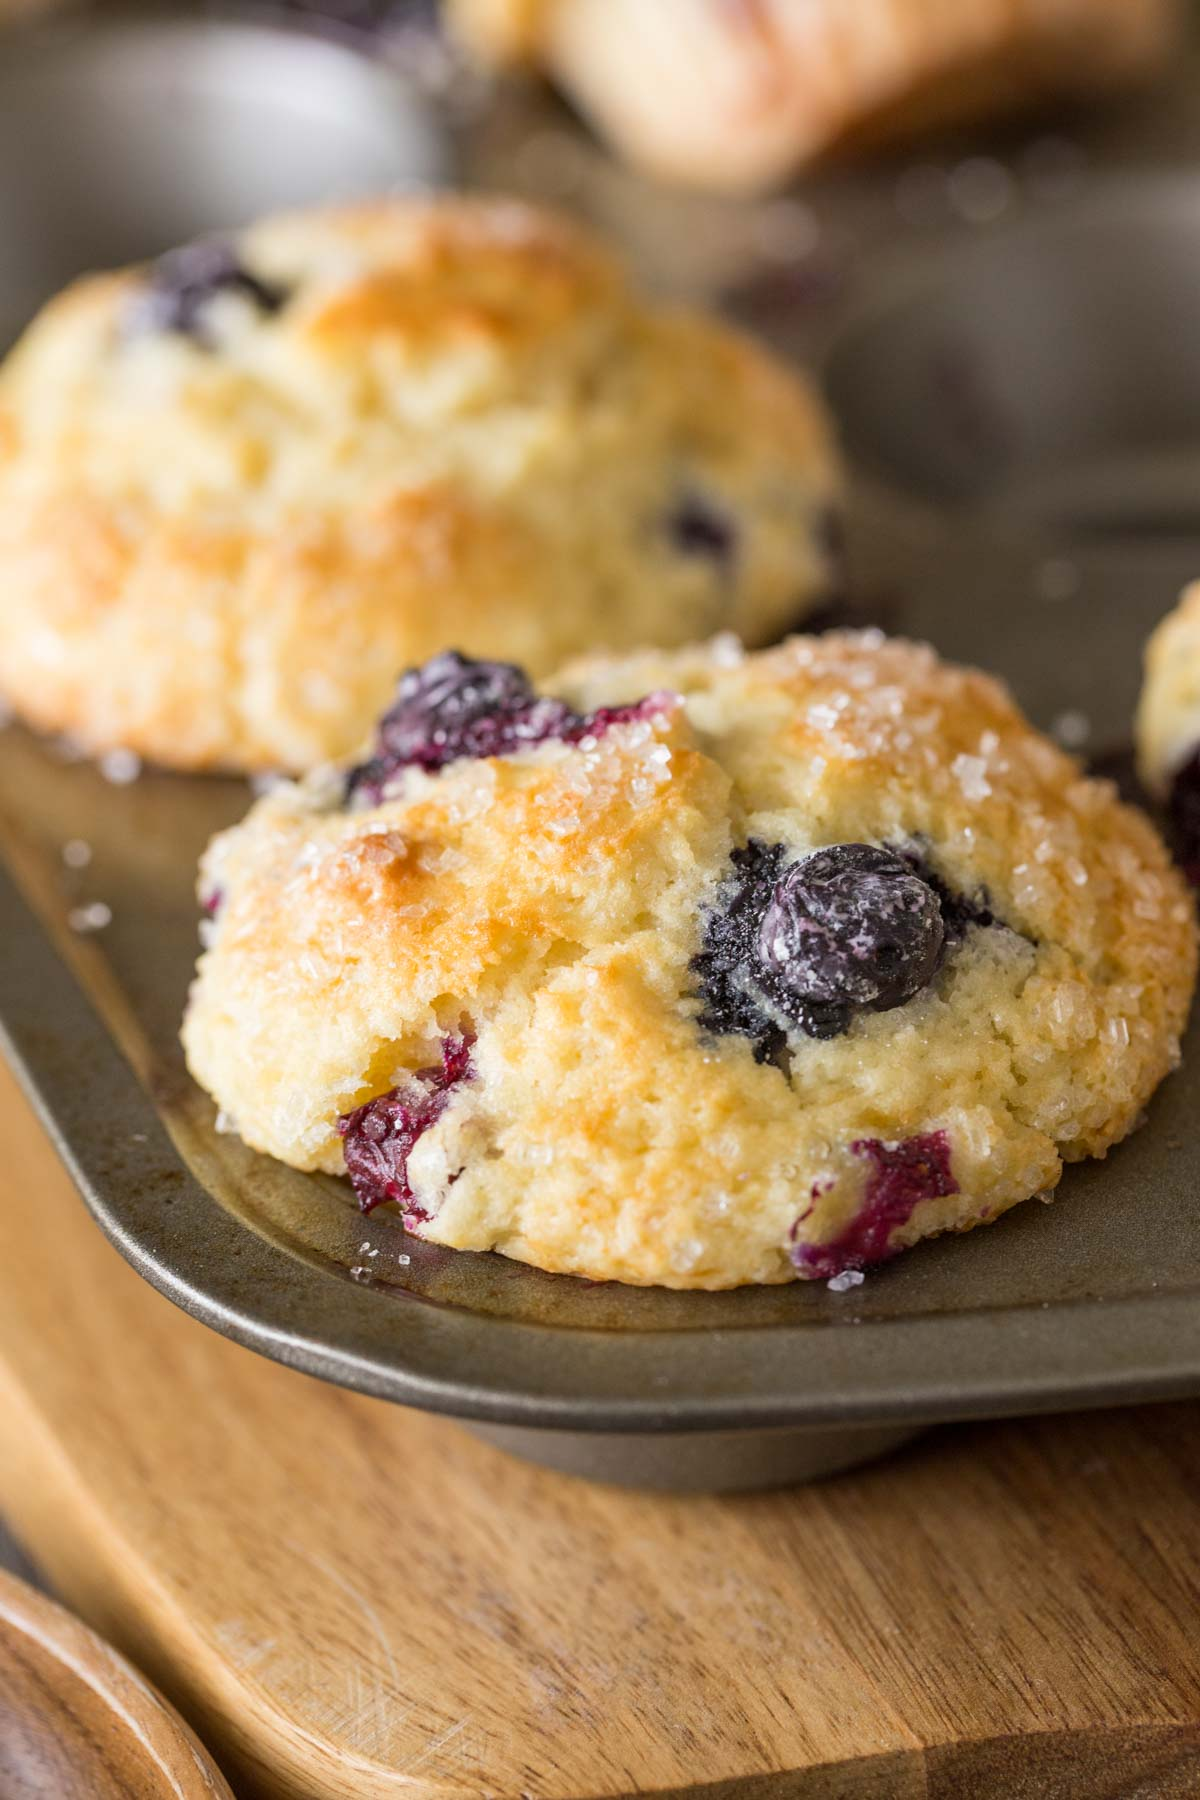 A close up shot of the Best Ever Buttermilk Blueberry Muffins in a muffin pan.